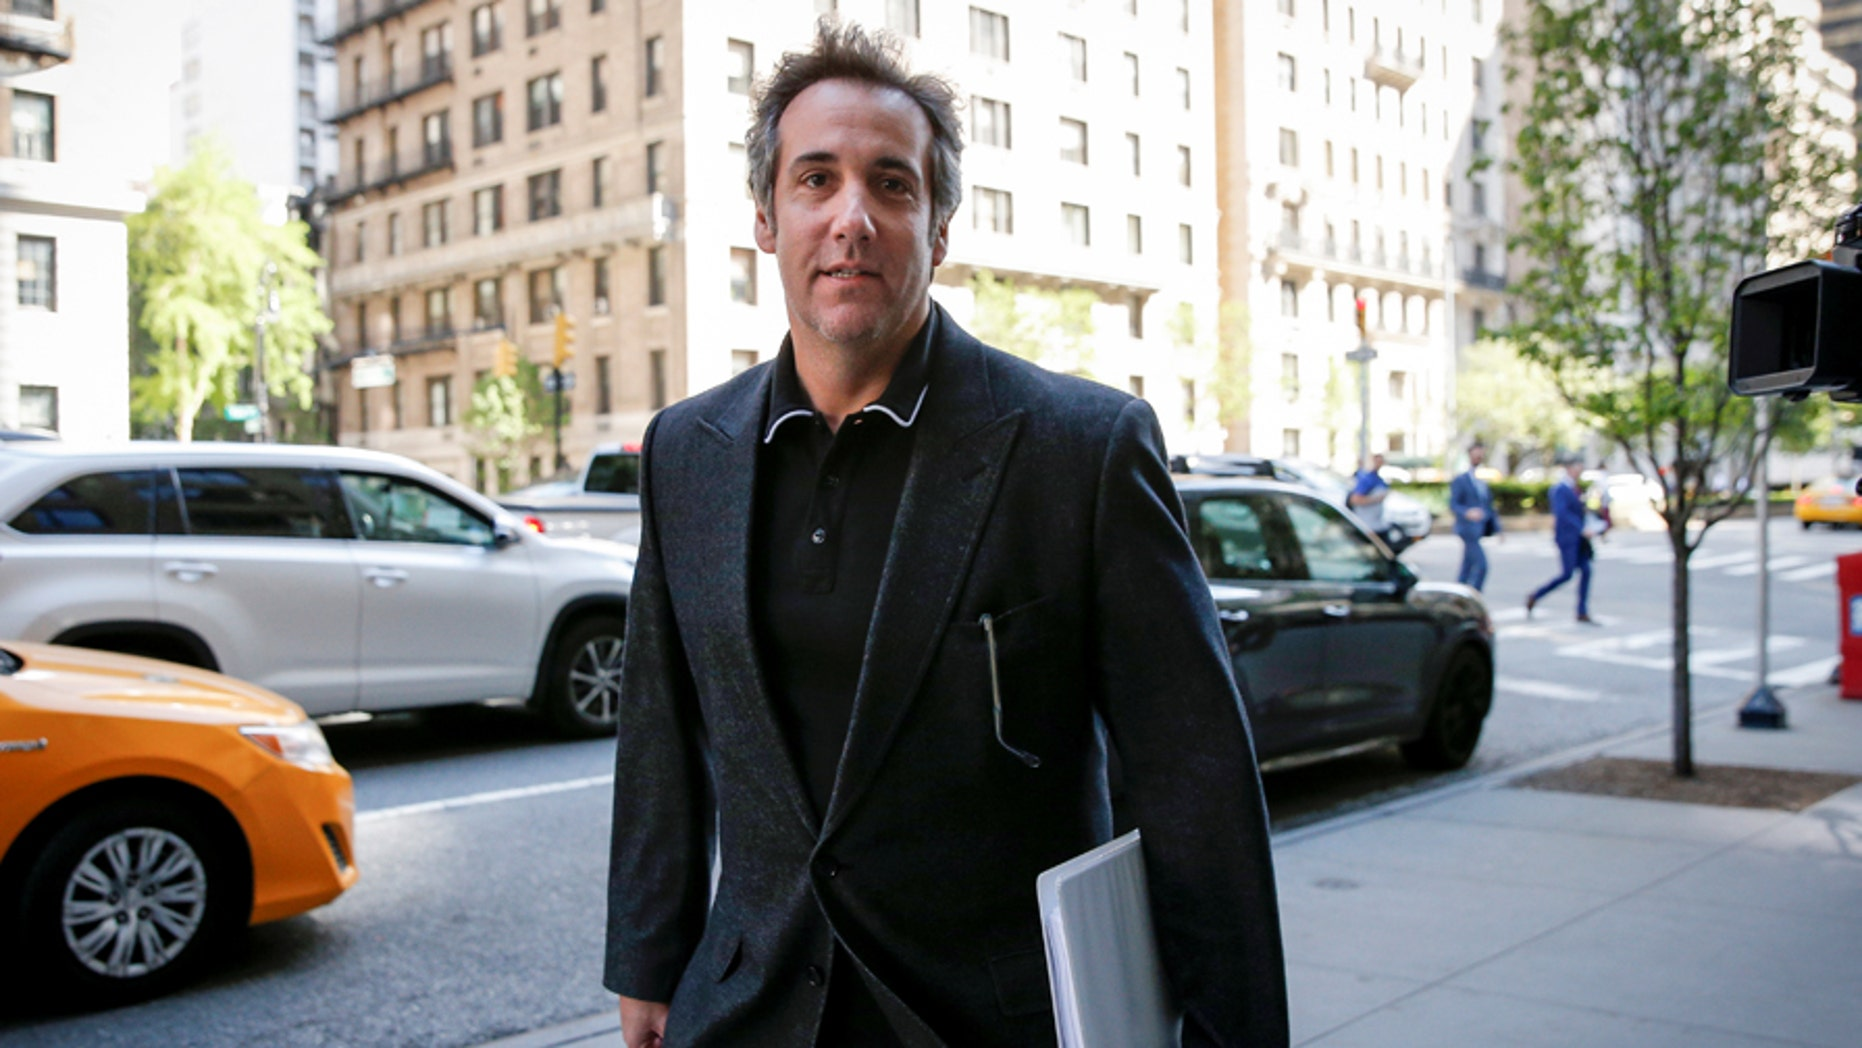 Former Trump Organization attorney Michael Cohen is facing scrutiny from federal investigators over his financial transactions.